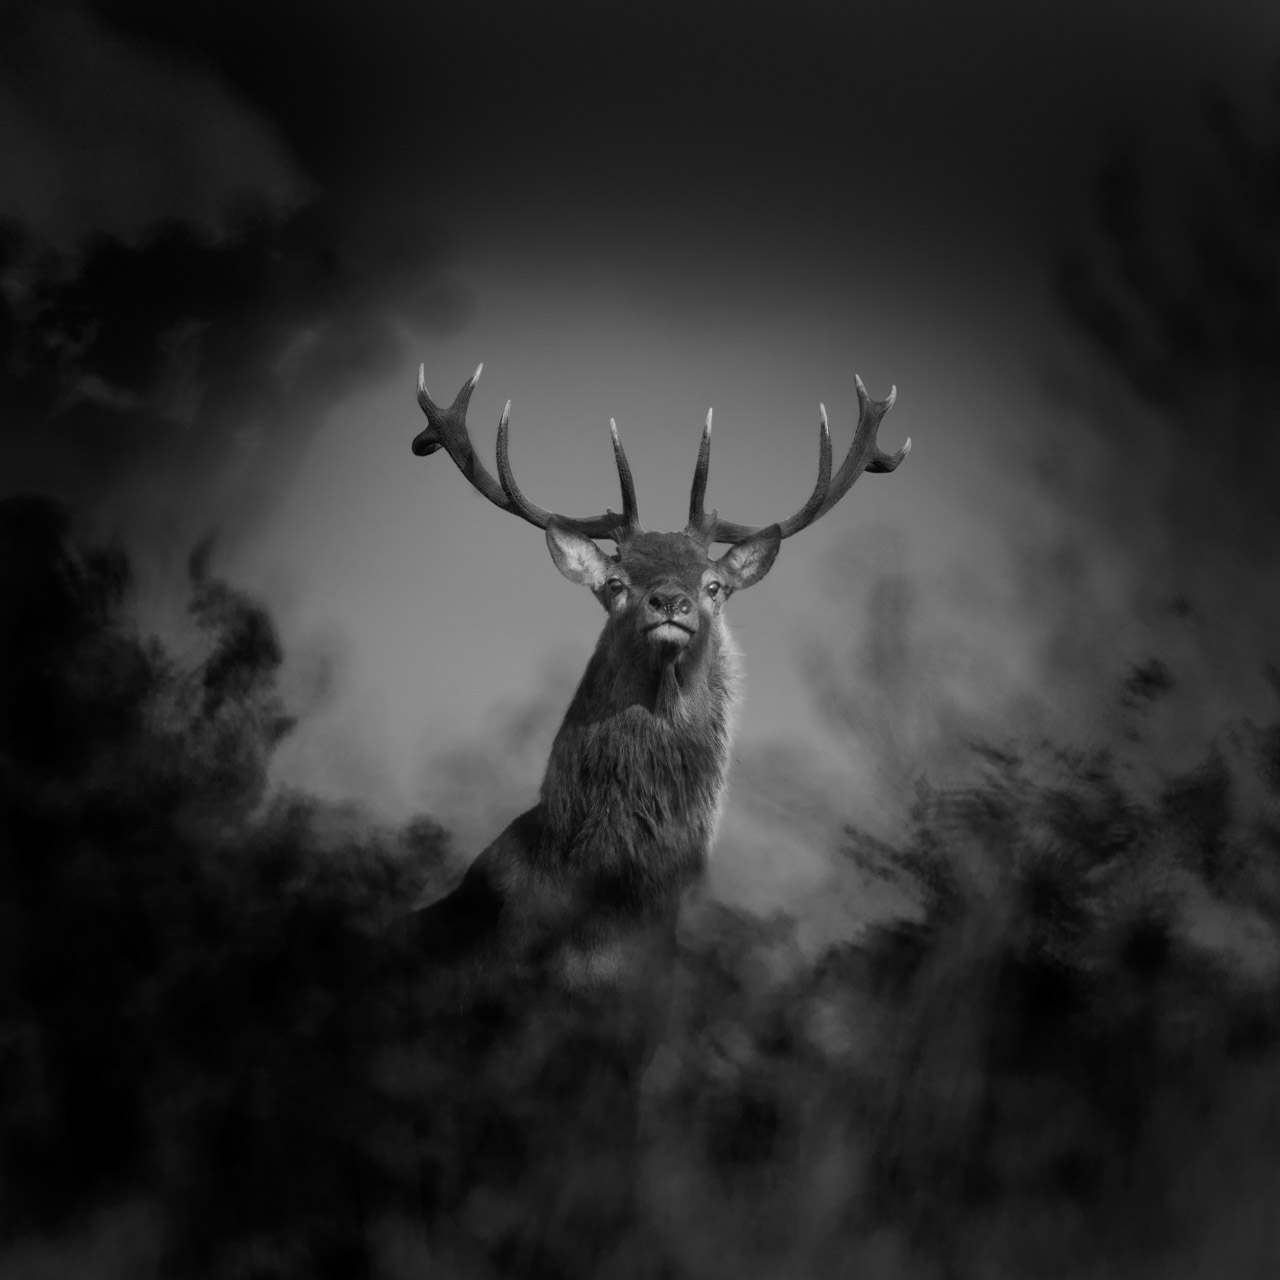 Look of a Red Deer Stag during the Rut. Photograph in black and white by Amar Guillen, photographer artist.